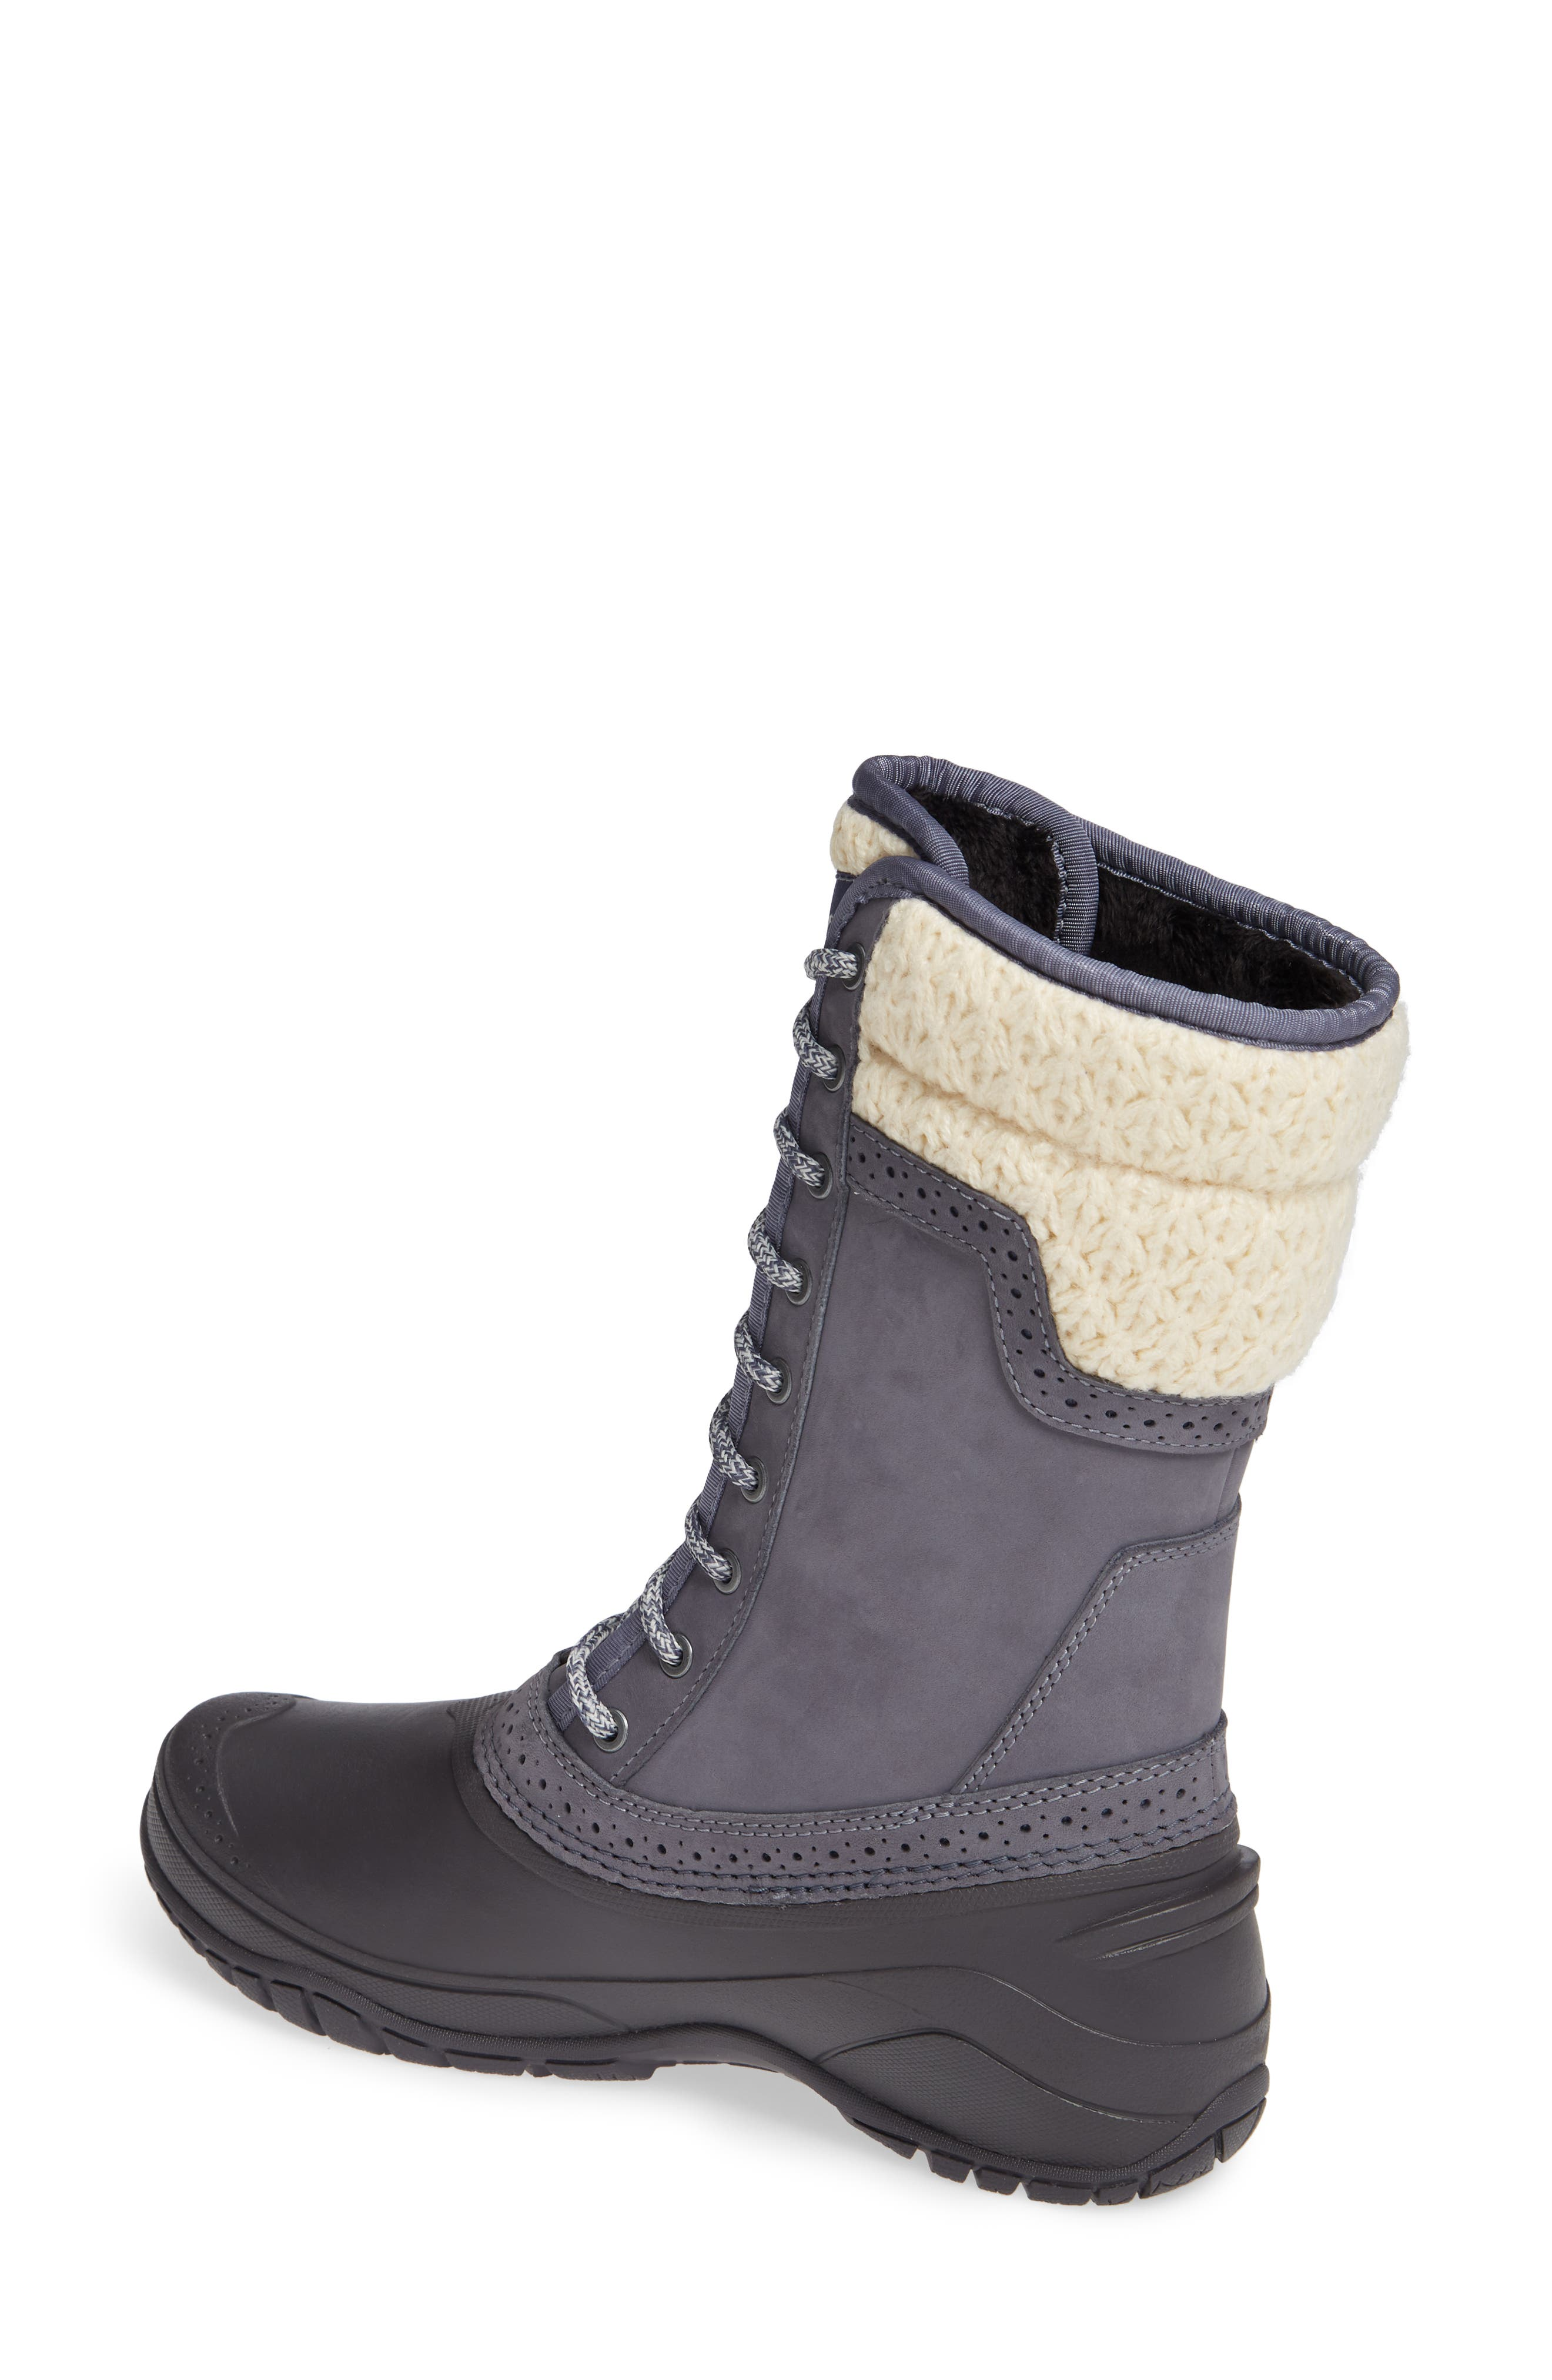 THE NORTH FACE, Shellista Waterproof Insulated Snow Boot, Alternate thumbnail 2, color, GRISAILLE GREY/ VINTAGE WHITE